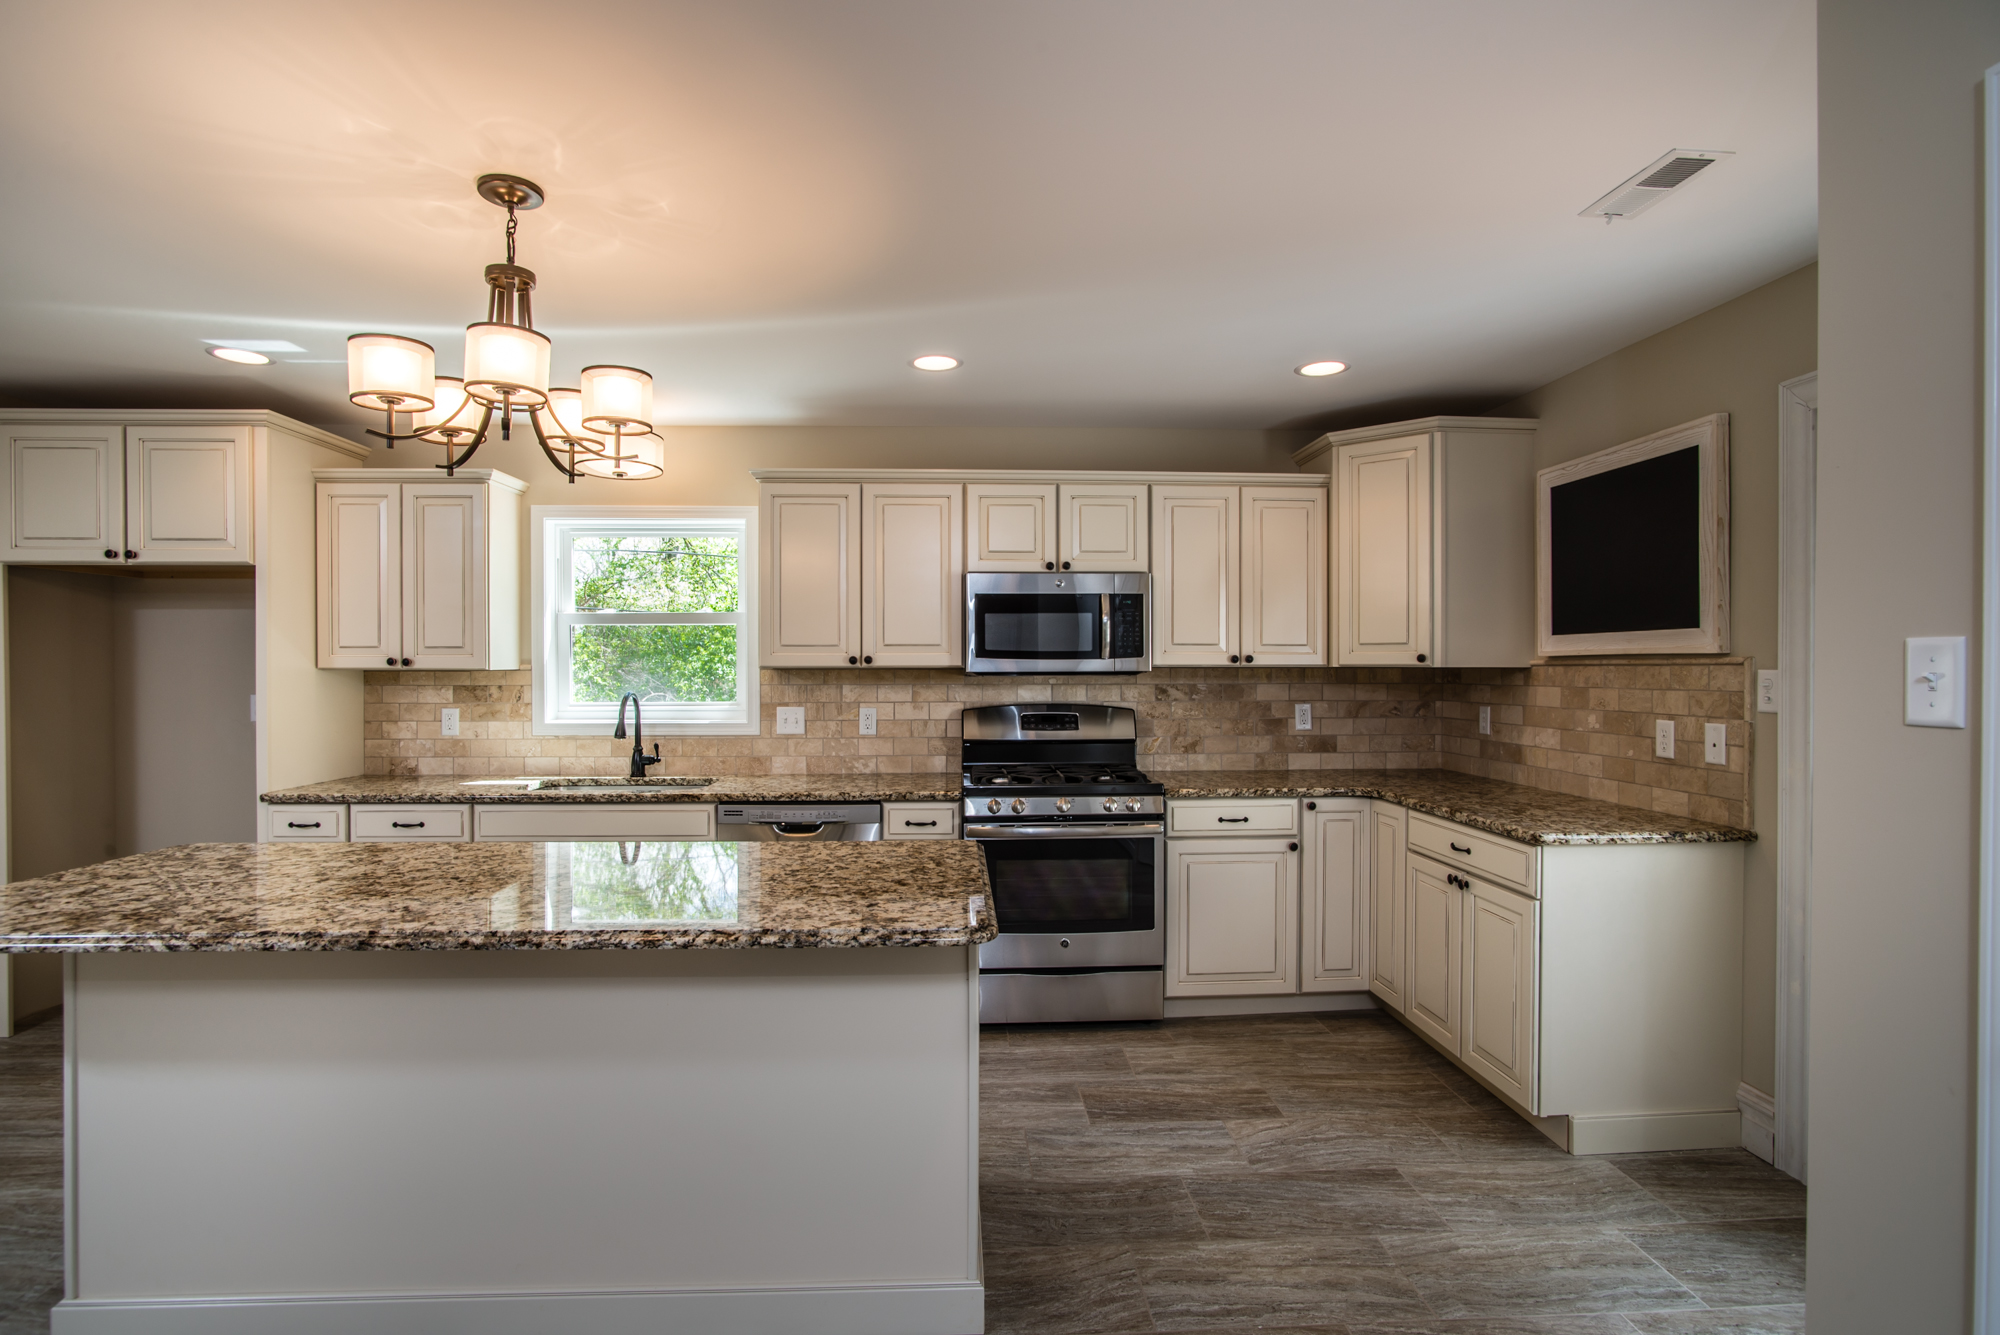 Real Estate Photography St Louis